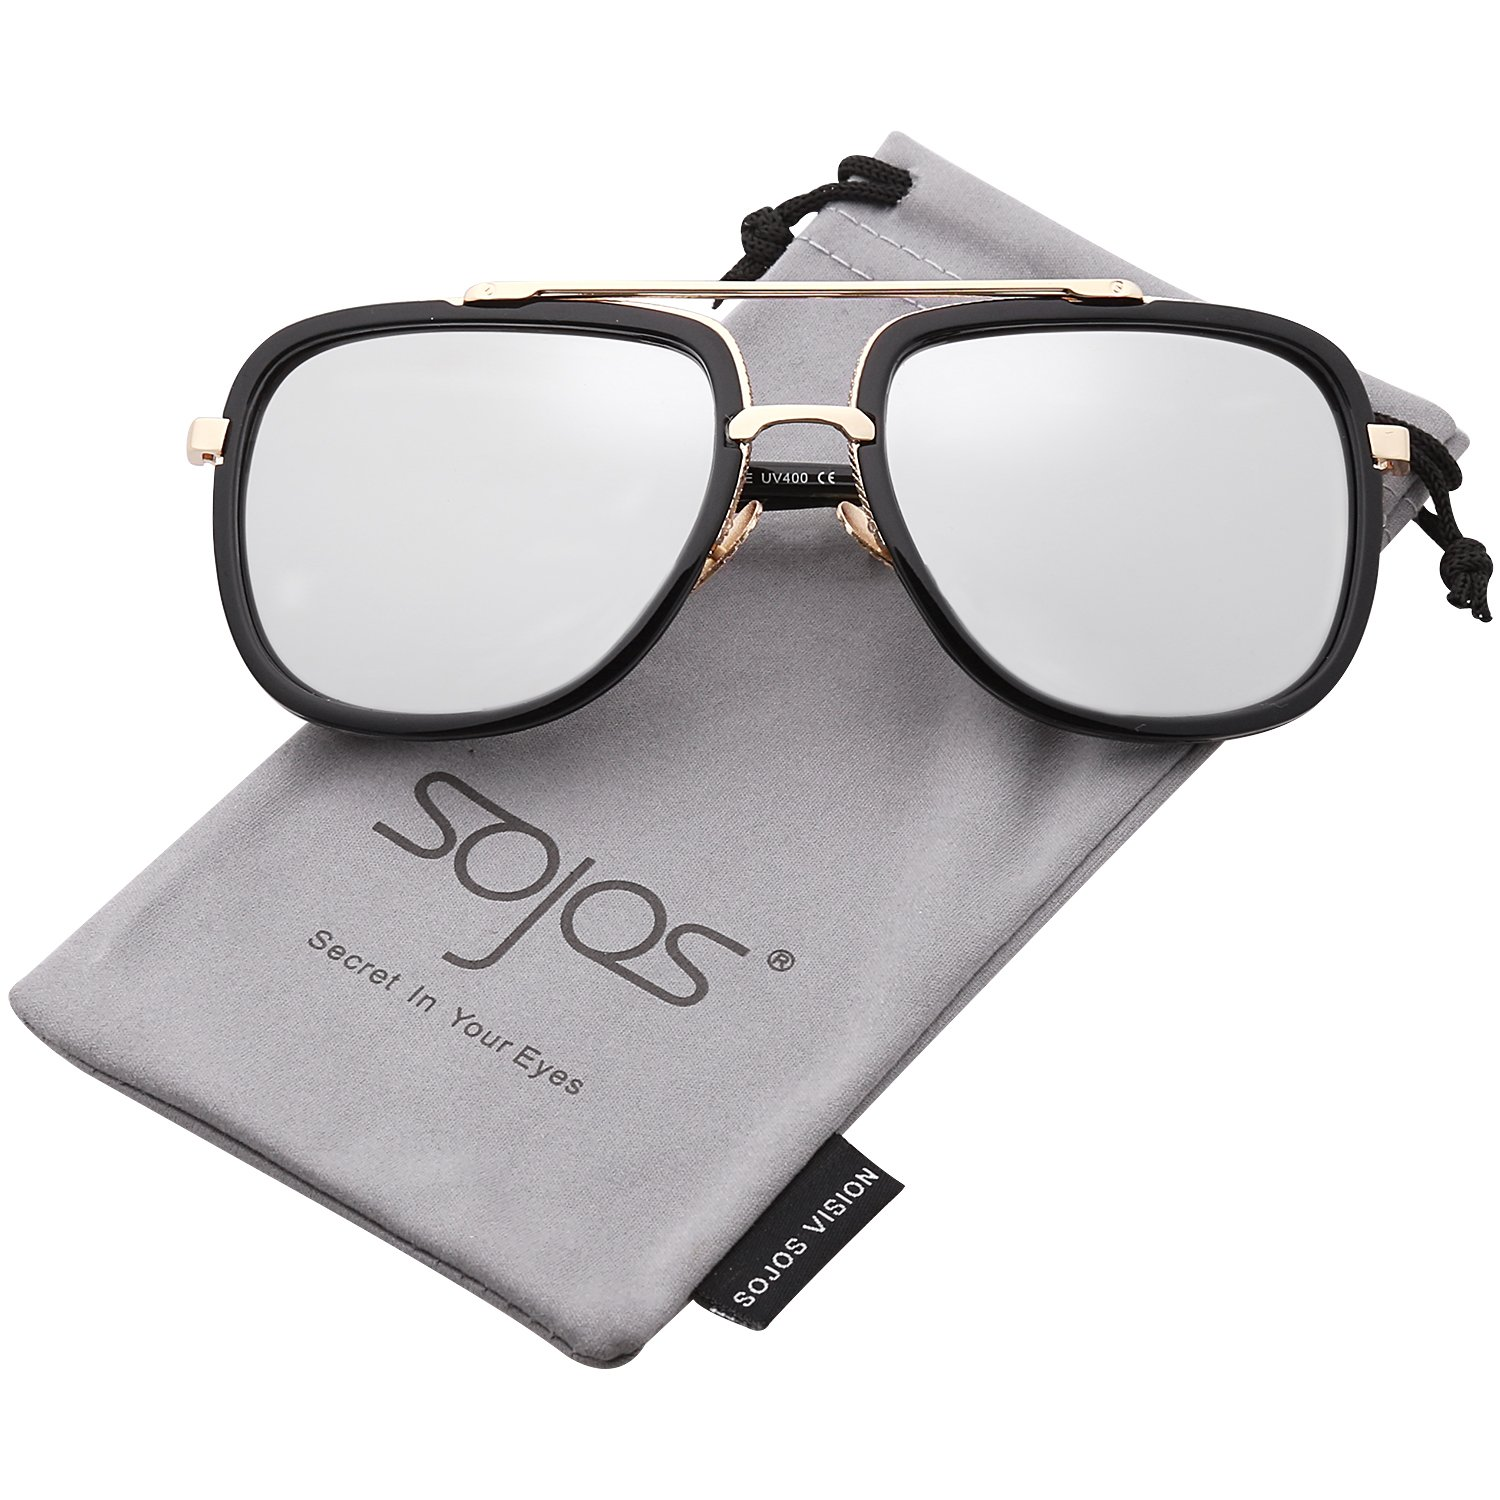 dc37516bf0 Amazon.com  SOJOS Classic Square Aviator Sunglasses Oversized Double Bar  Metal Frame SJ1080 with Black Frame Silver Mirrored Lens  Clothing